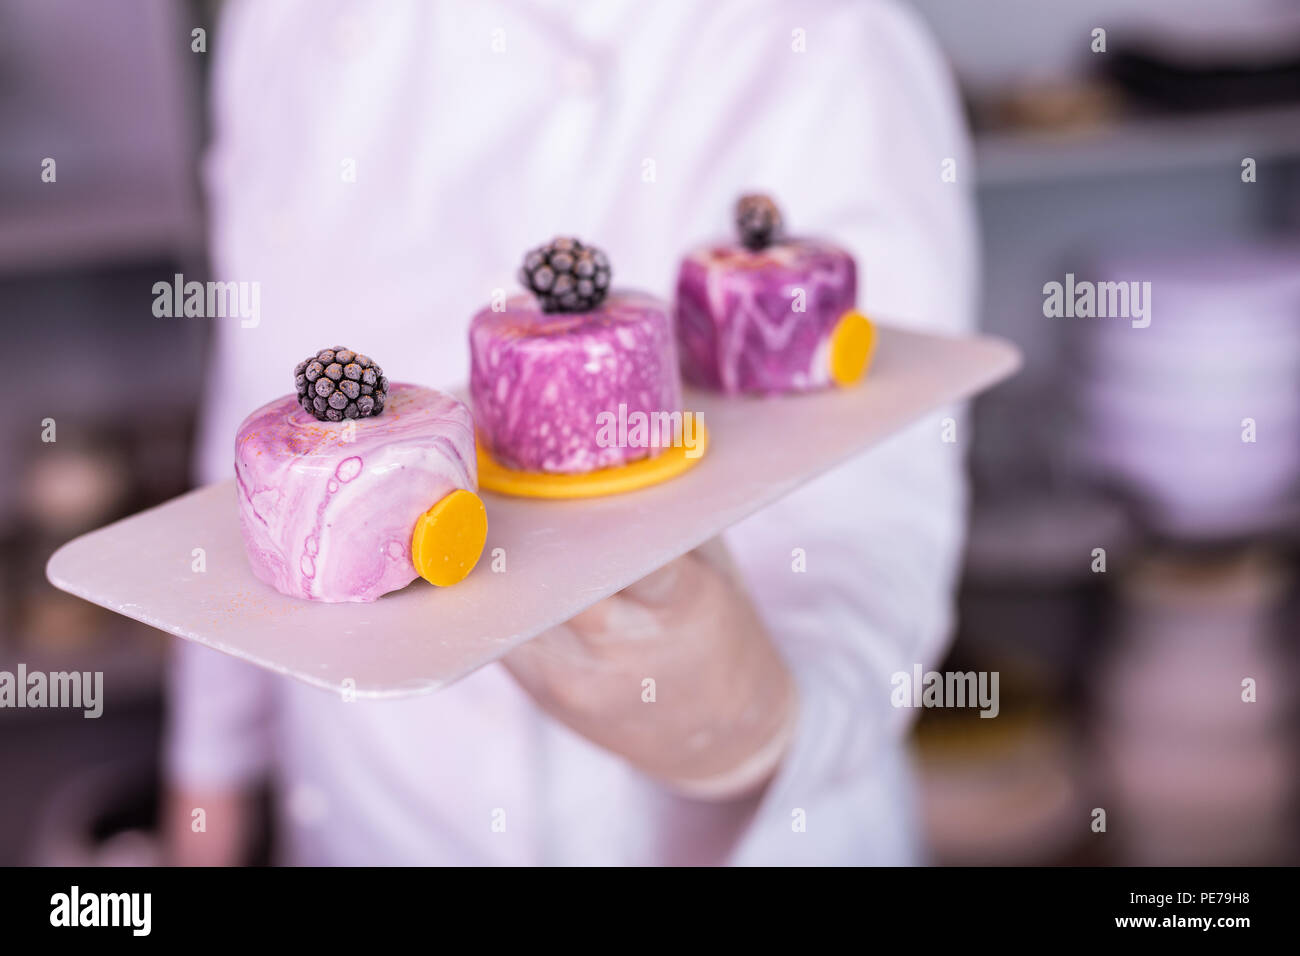 Chef wearing gloves and jacket holding plate with cakes - Stock Image